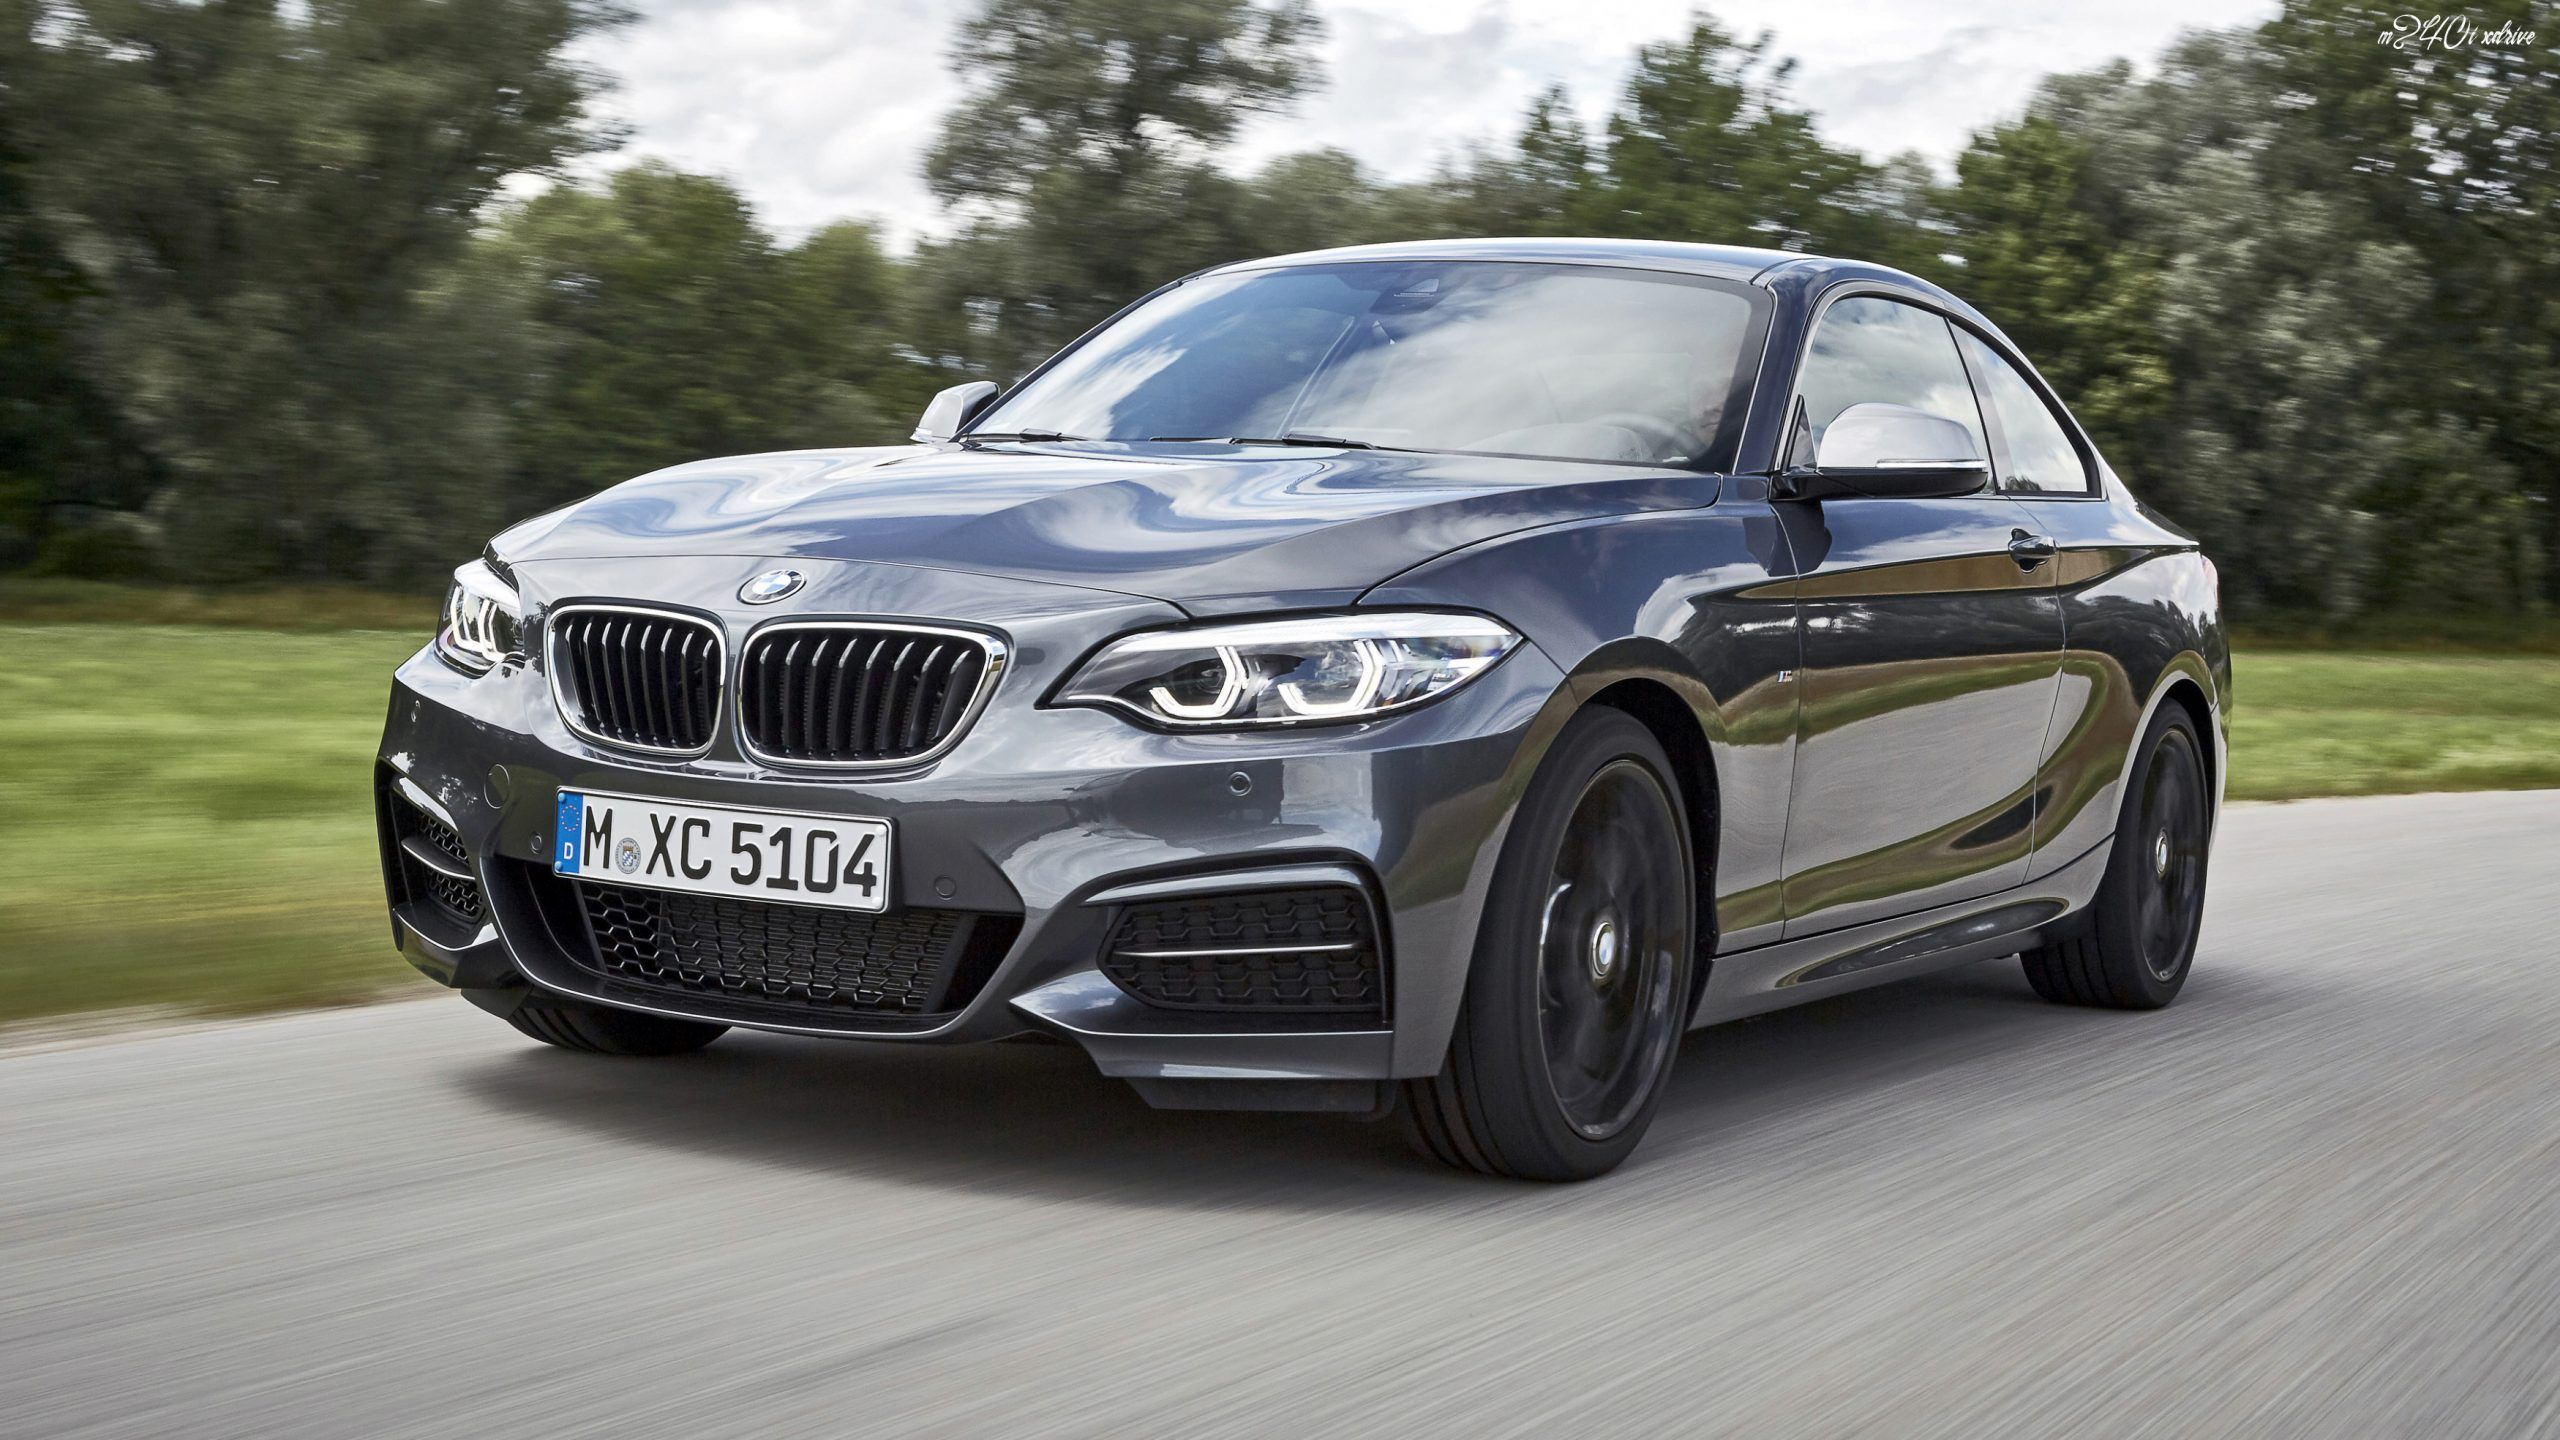 M240i Xdrive Review And Release Date In 2020 Bmw Bmw 4 Series Coupe Vehicle Warranty